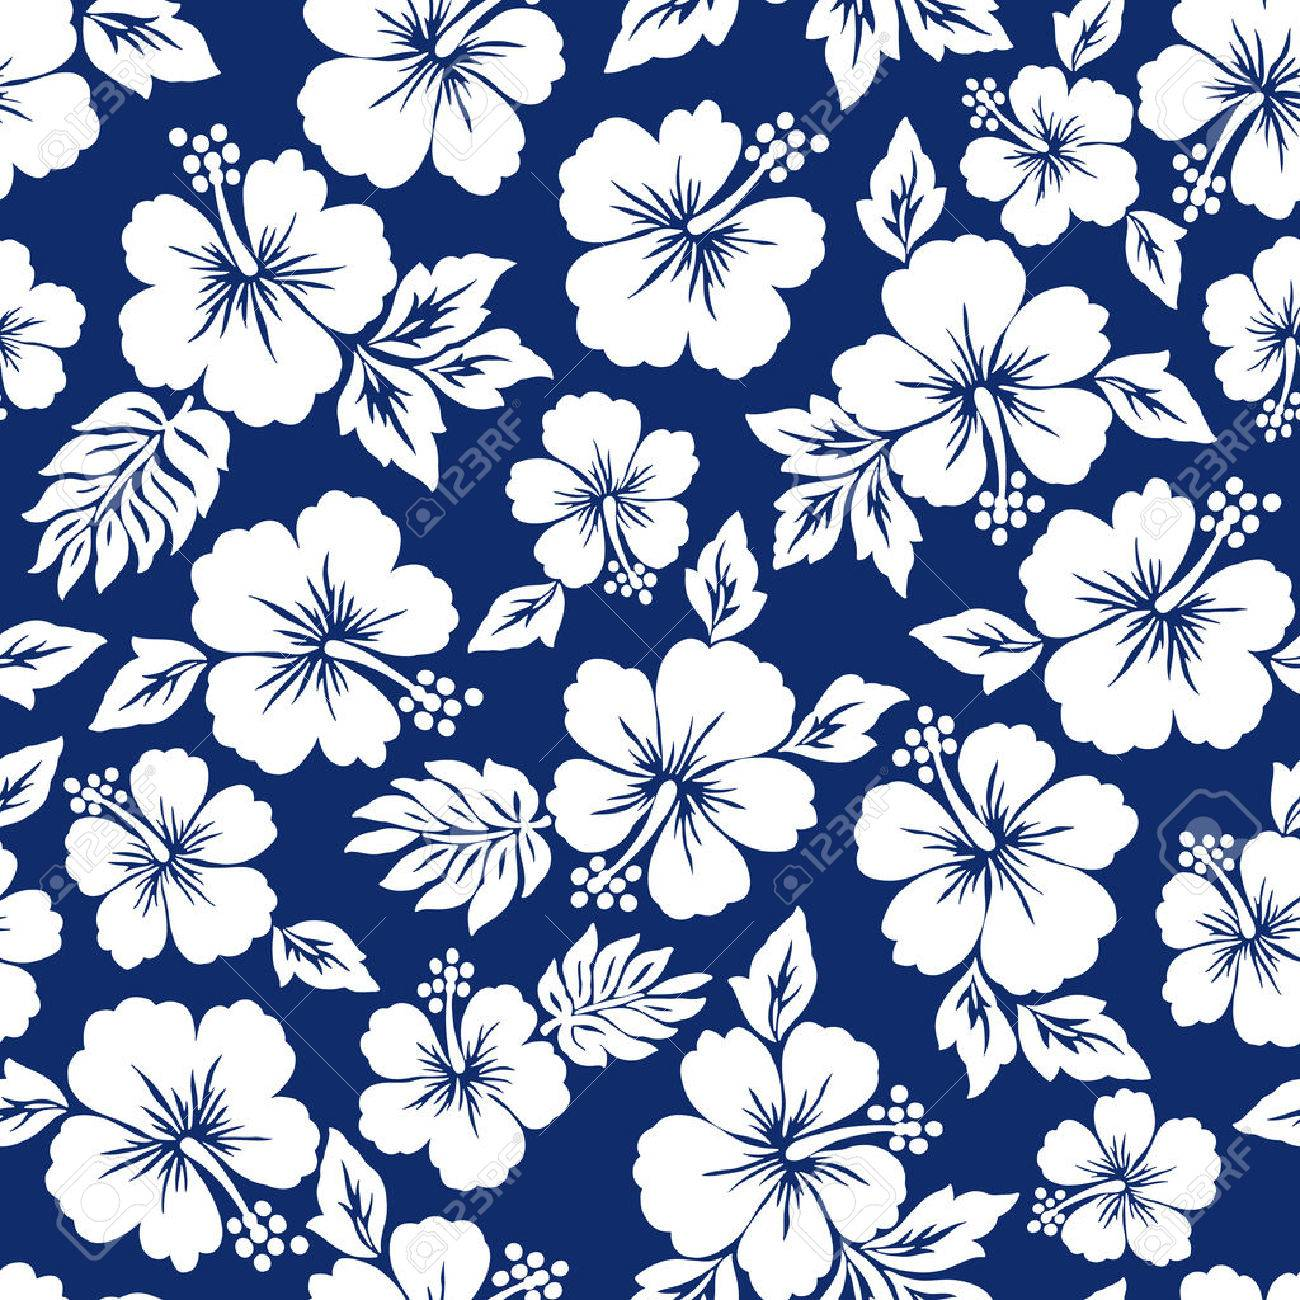 Hibiscus Flower Pattern Royalty Free Cliparts Vectors And Stock